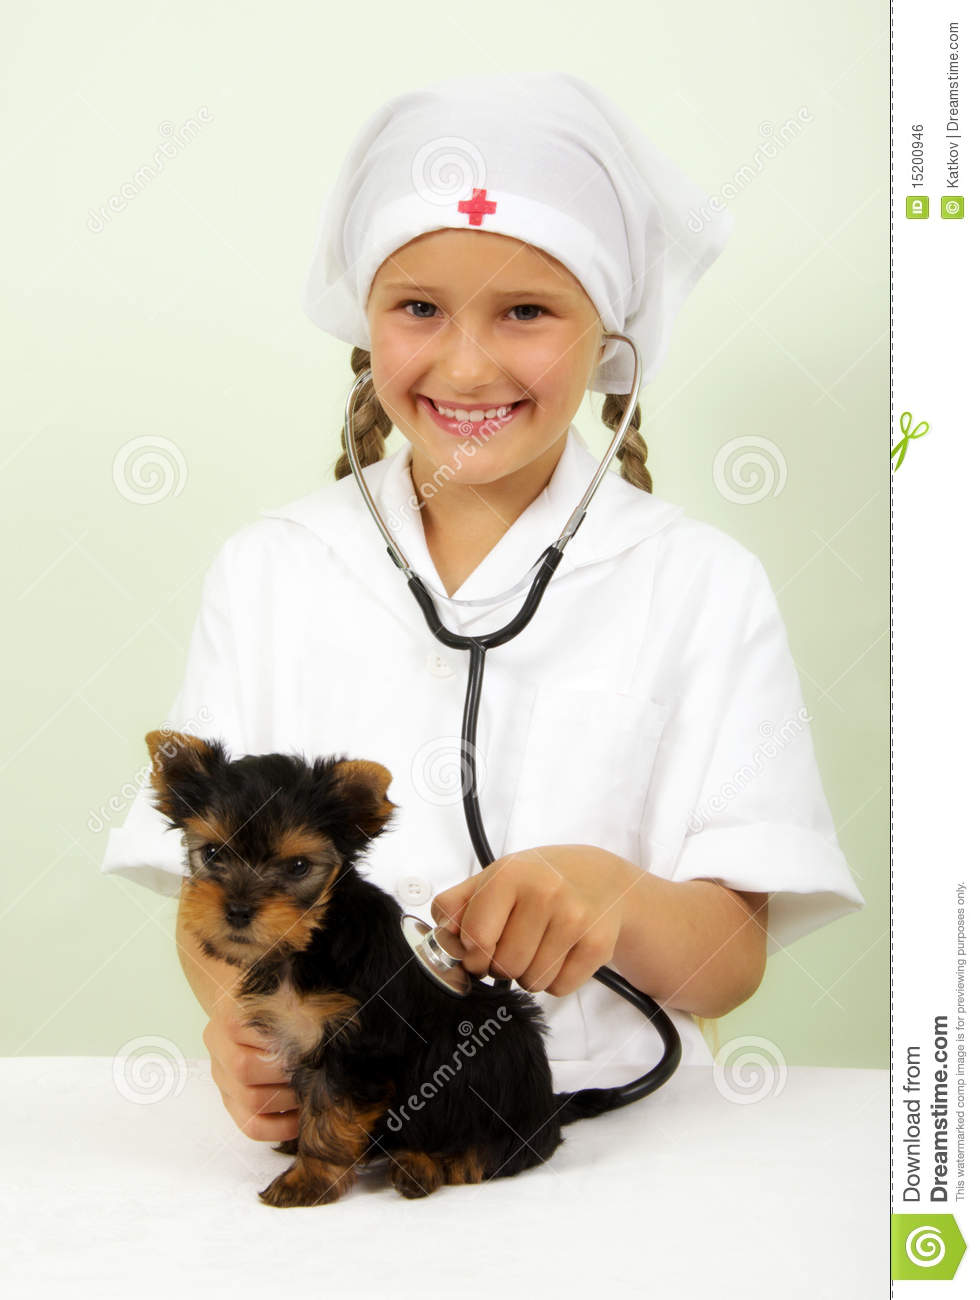 veterinar kid Girl Playing Veterinarian Royalty Free Stock Image 15200946